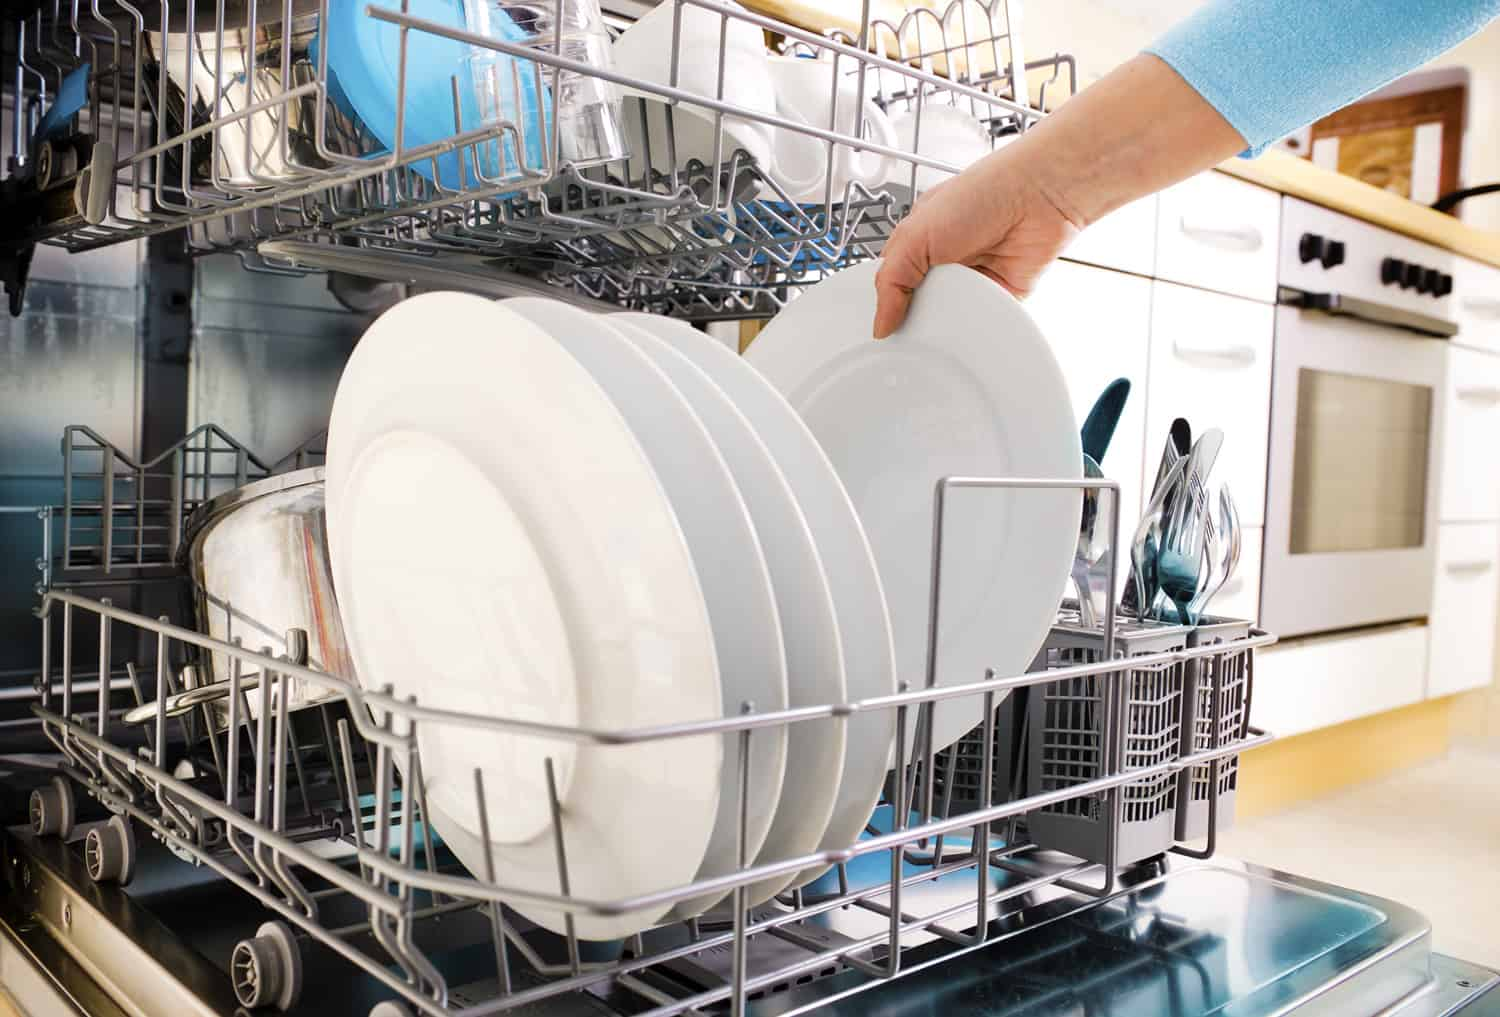 loading a dishwasher with enough load